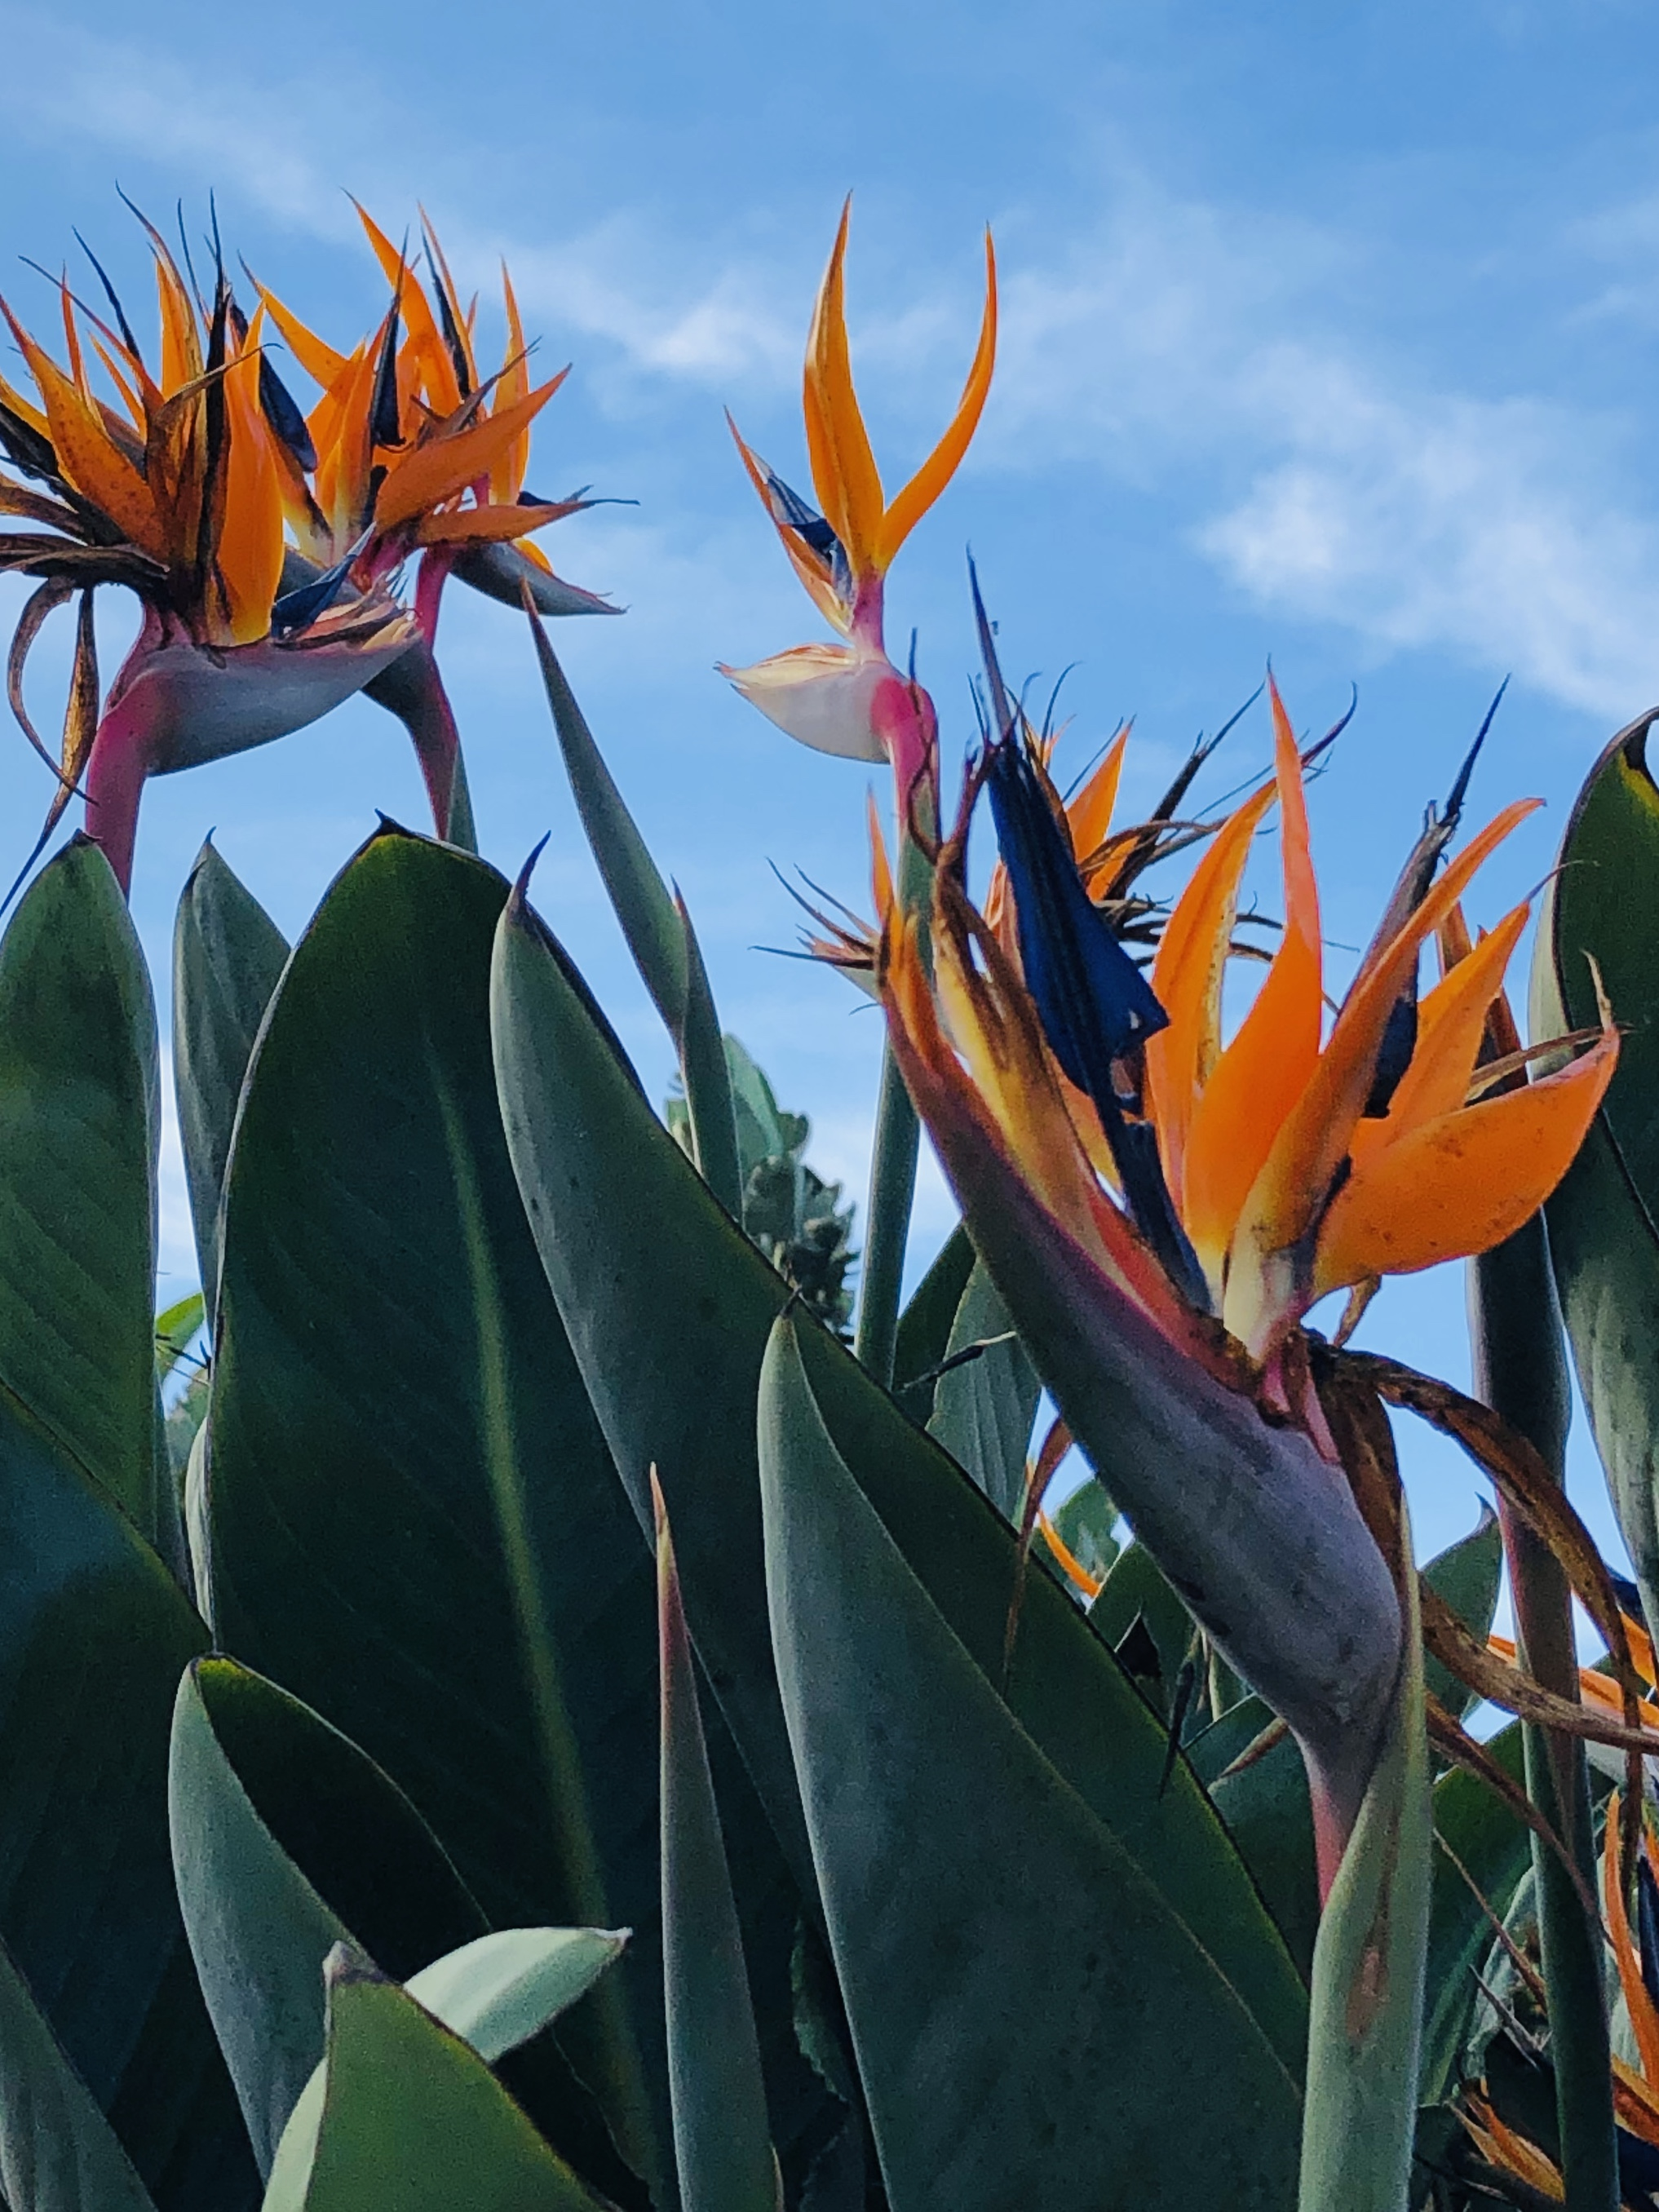 Gazing up with the Birds of Paradise - This view gives me pause to think about how humbling myself gives me new perspectives of creation and humanity that I would never have from looking down on those things. I am reminded that humility isn't about humiliation. Instead, for me, it's about meeting people where they are (not asking them to come up to where I am), serving those that often go unseen or unacknowledged (and in so doing, seeing what Love looks like) and gaining new and deeper understanding of who God is.